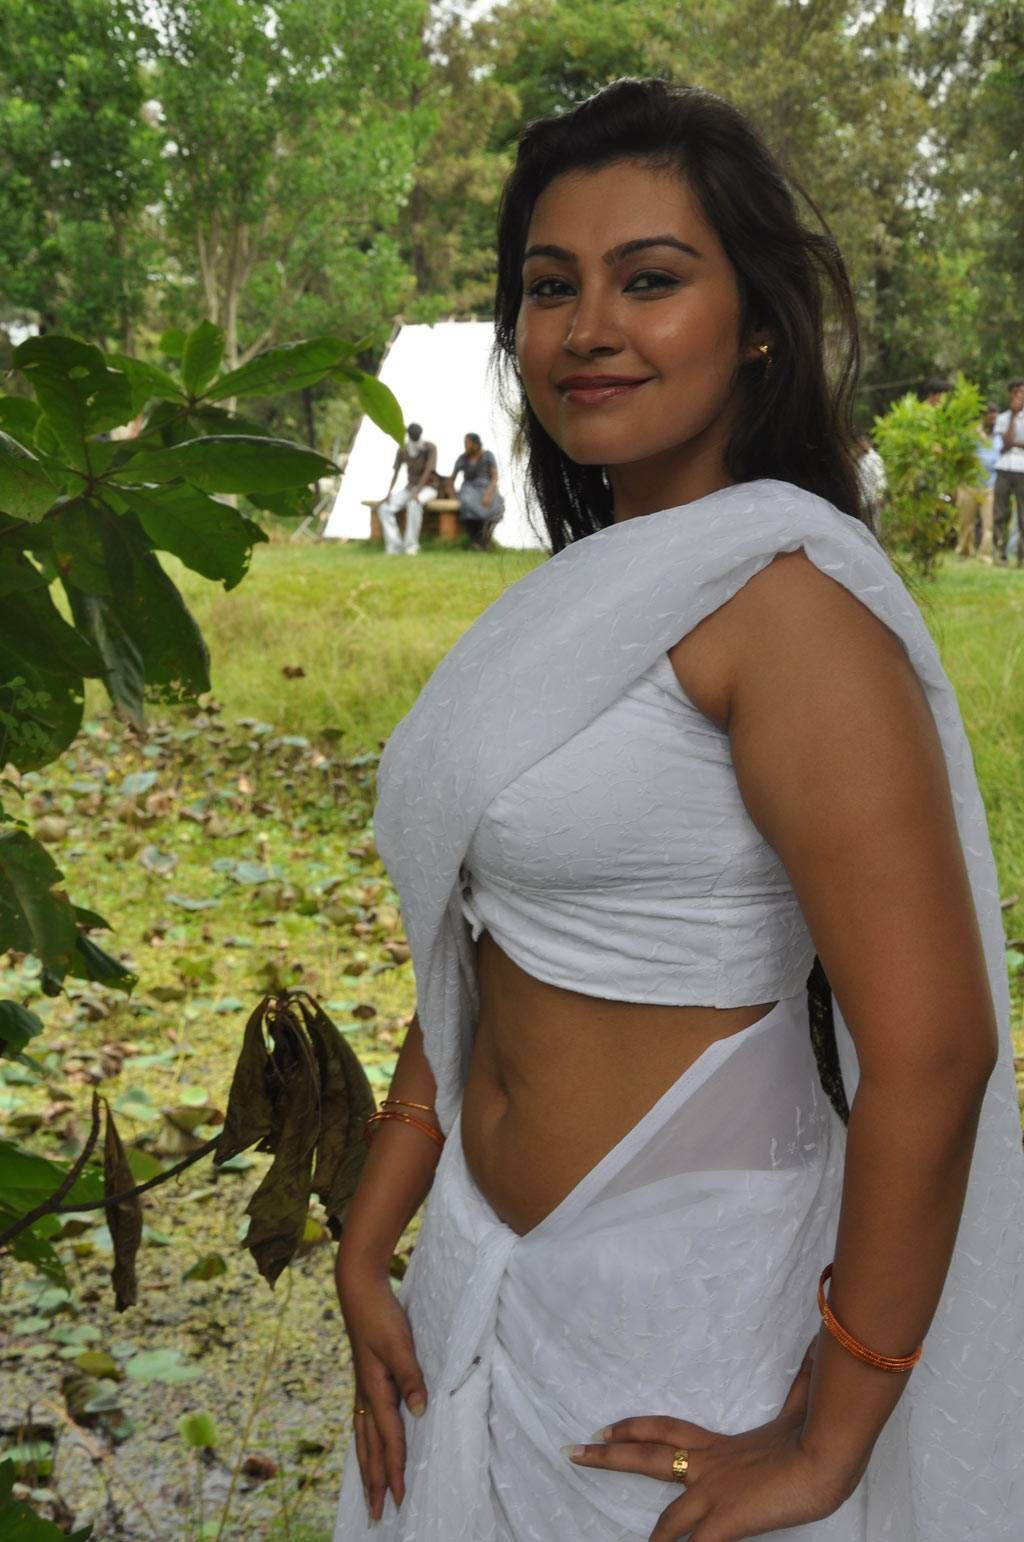 Hot tamil actress in white sleeveless saree blouse photos sathyasai hot tamil actress in white sleeveless saree blouse photos sathyasai spicy images28329g 10241542 altavistaventures Image collections